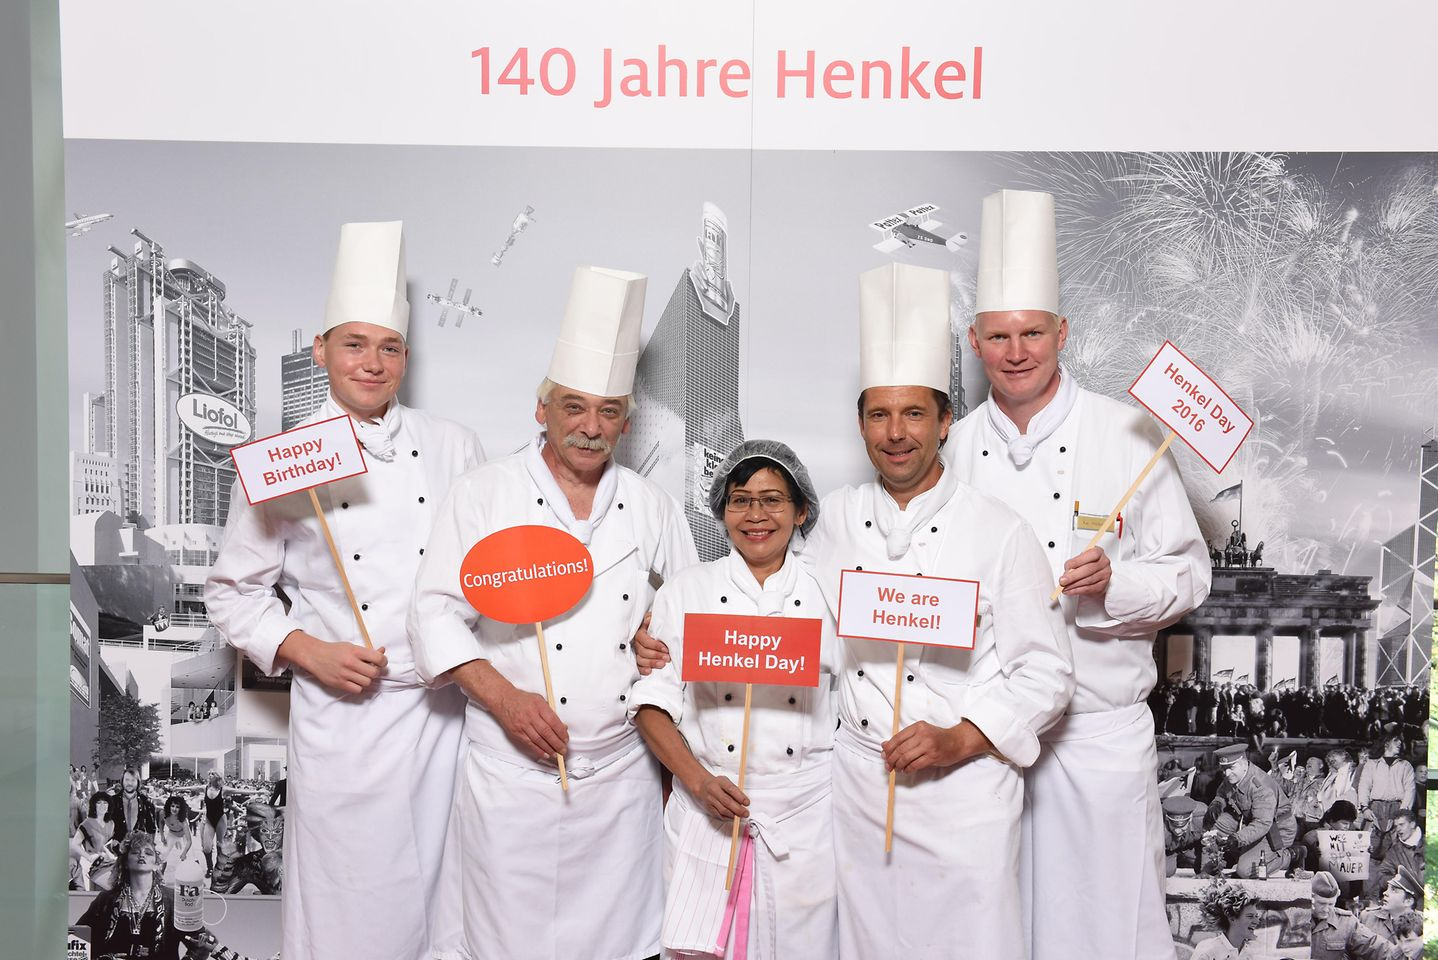 Henkel140-team-germany-gastro.JPG